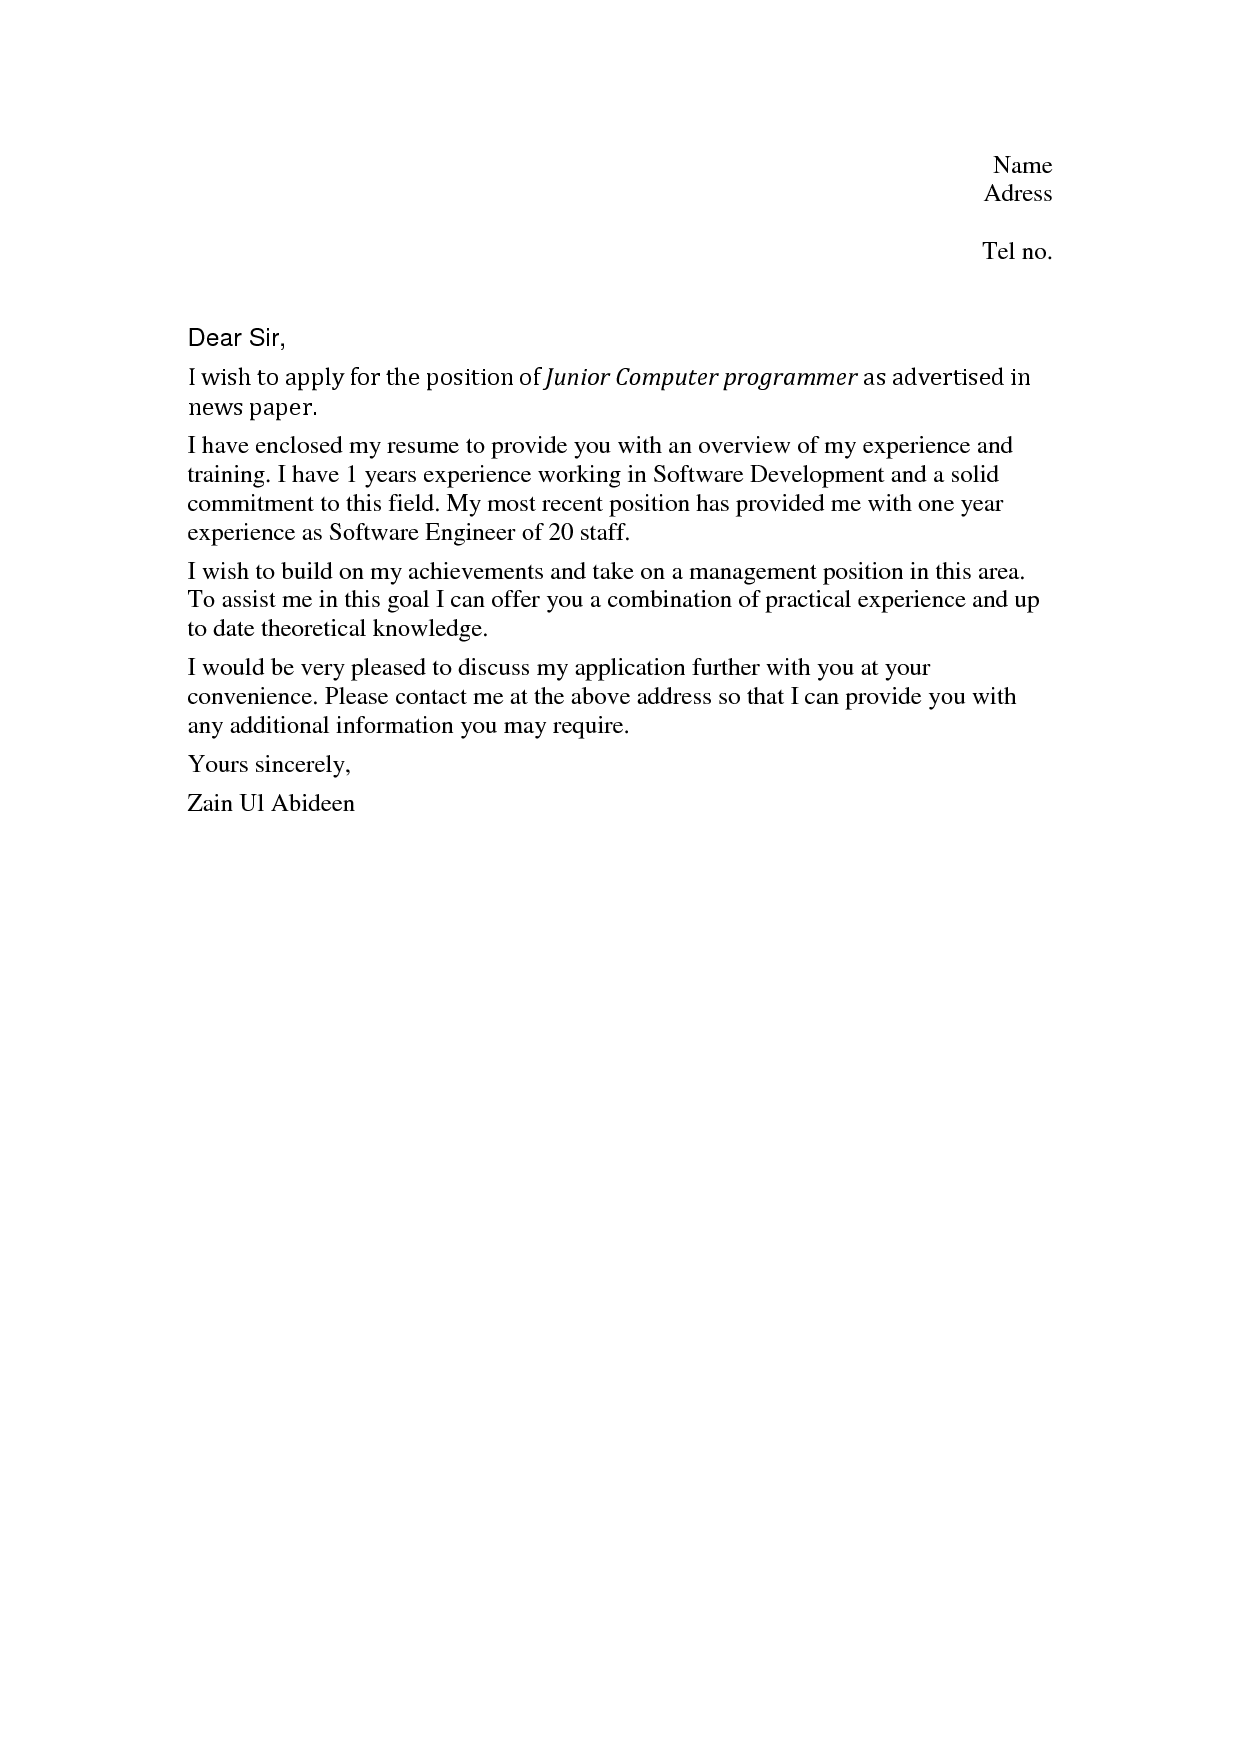 sample cover letter for job